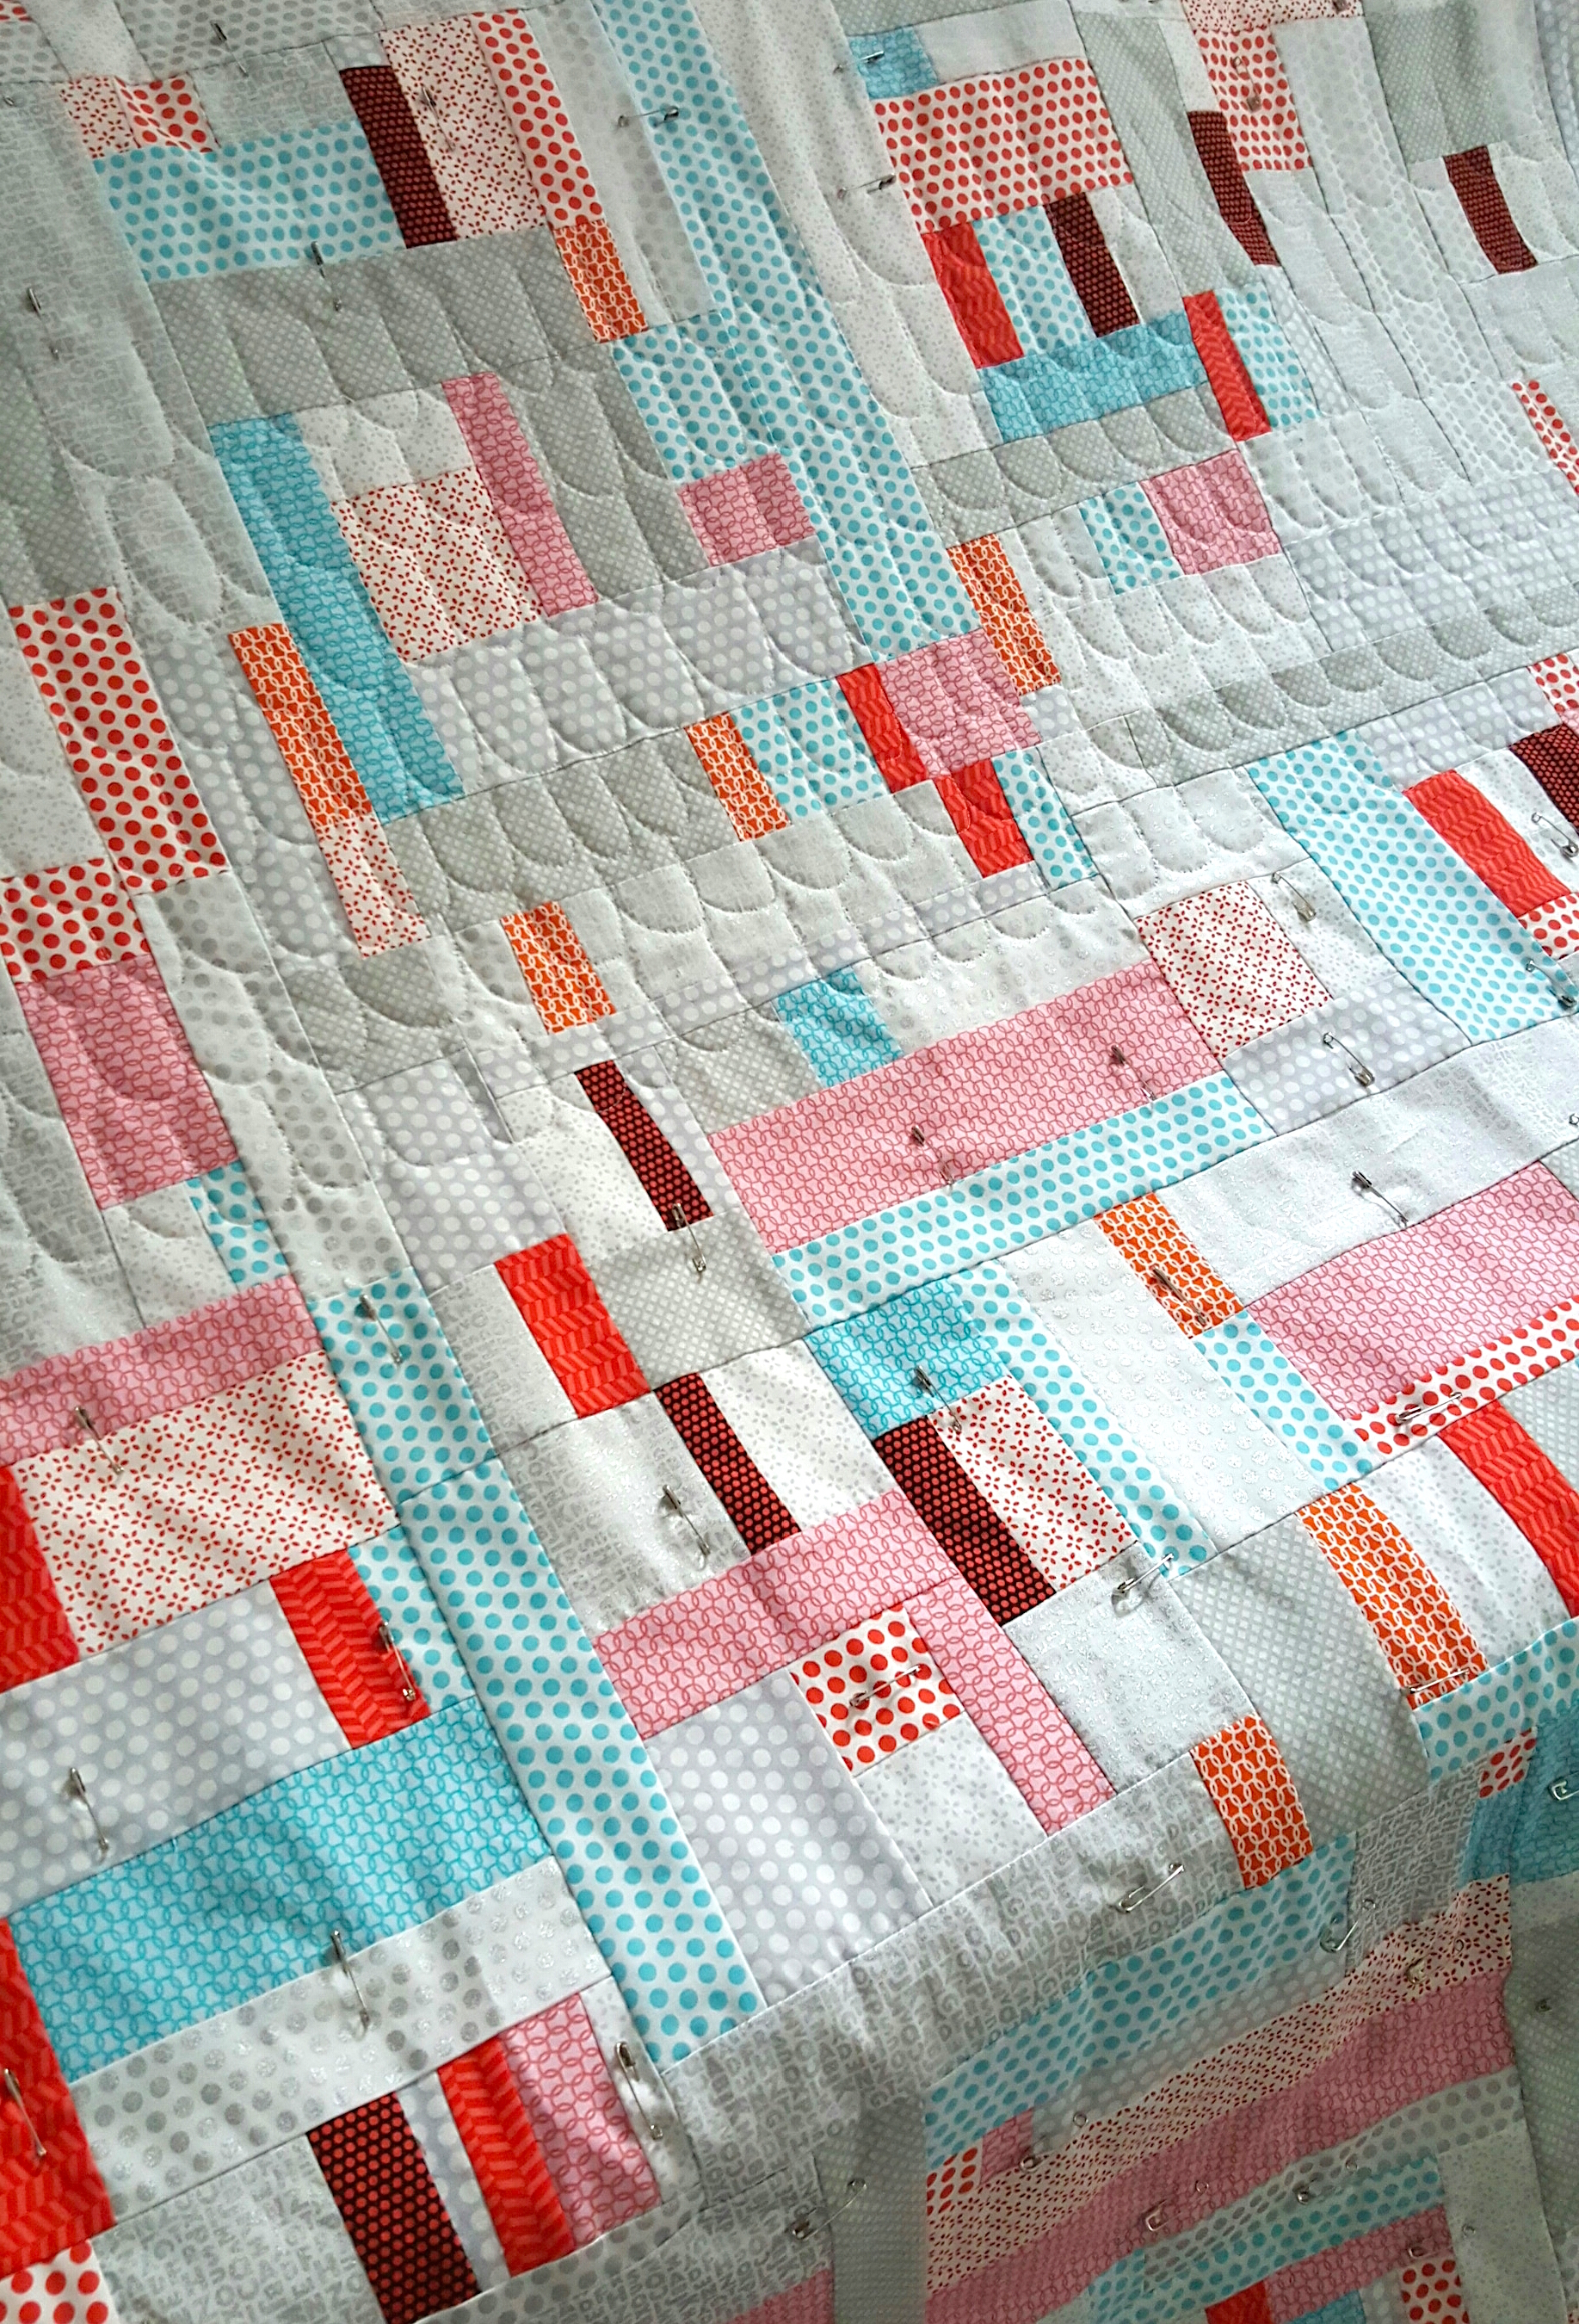 Pickets for Uppercase Being Quilted